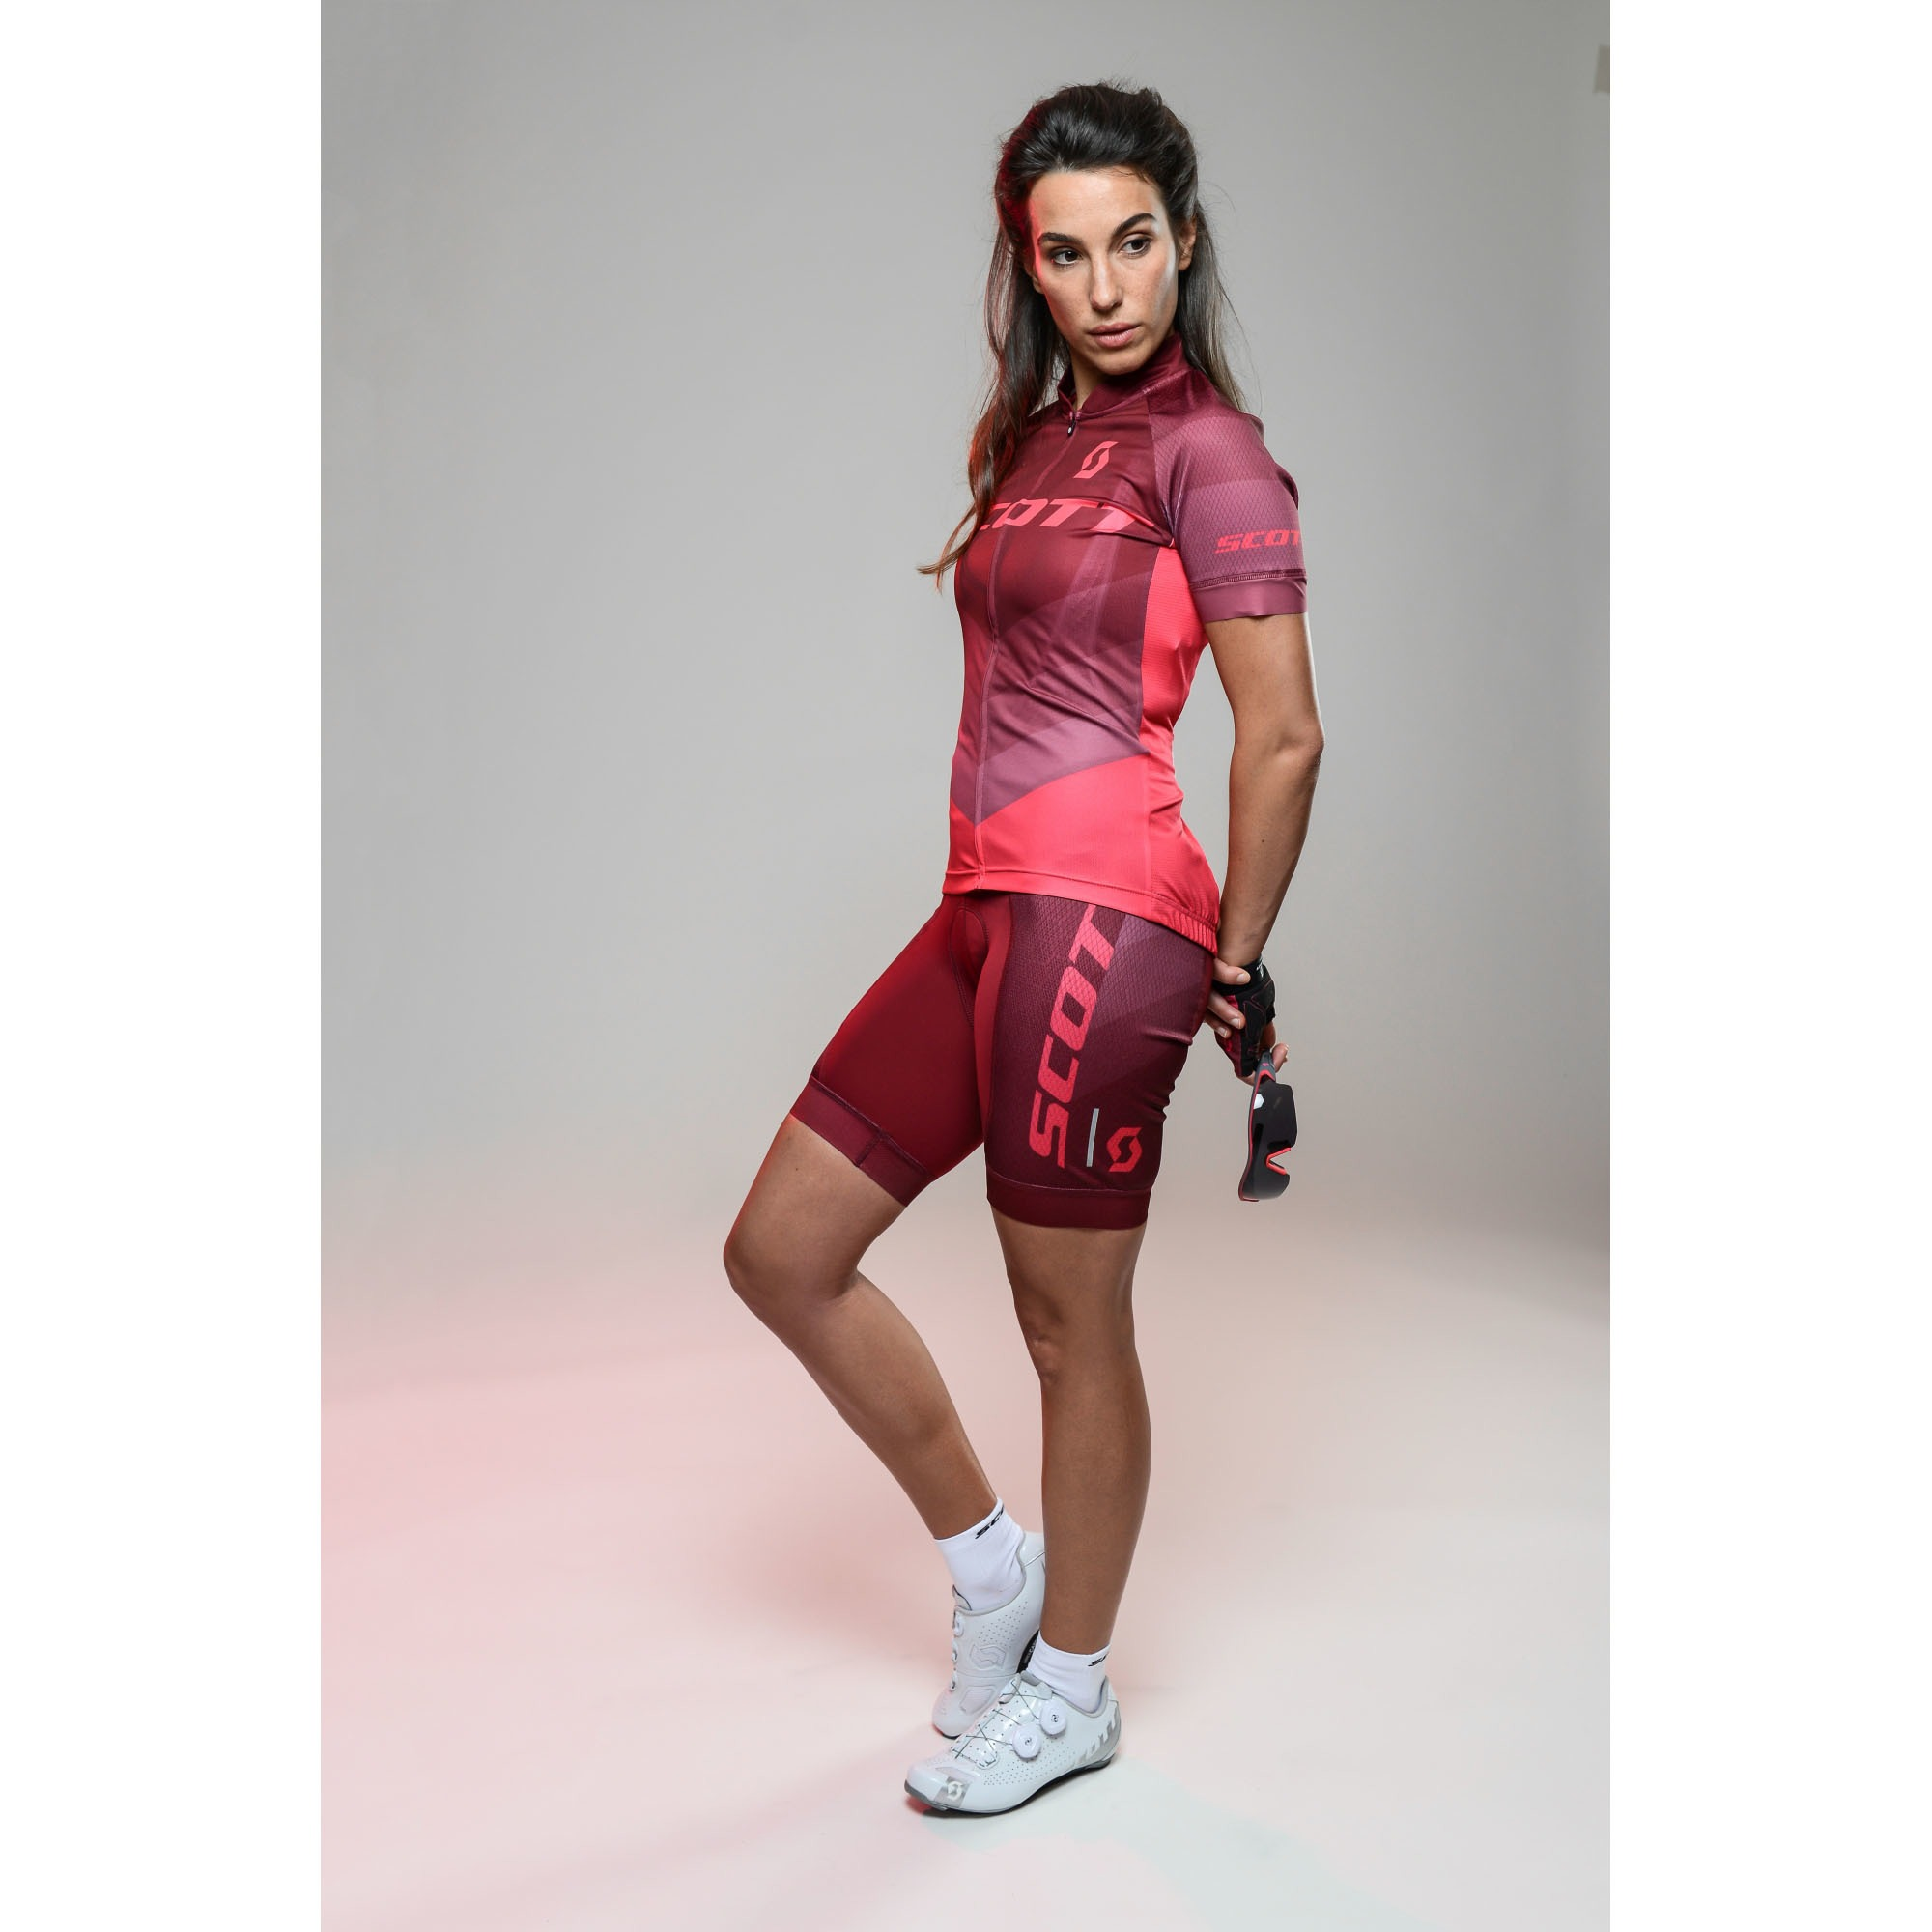 SCOTT RC Pro Tec +++ Women's Bibshorts